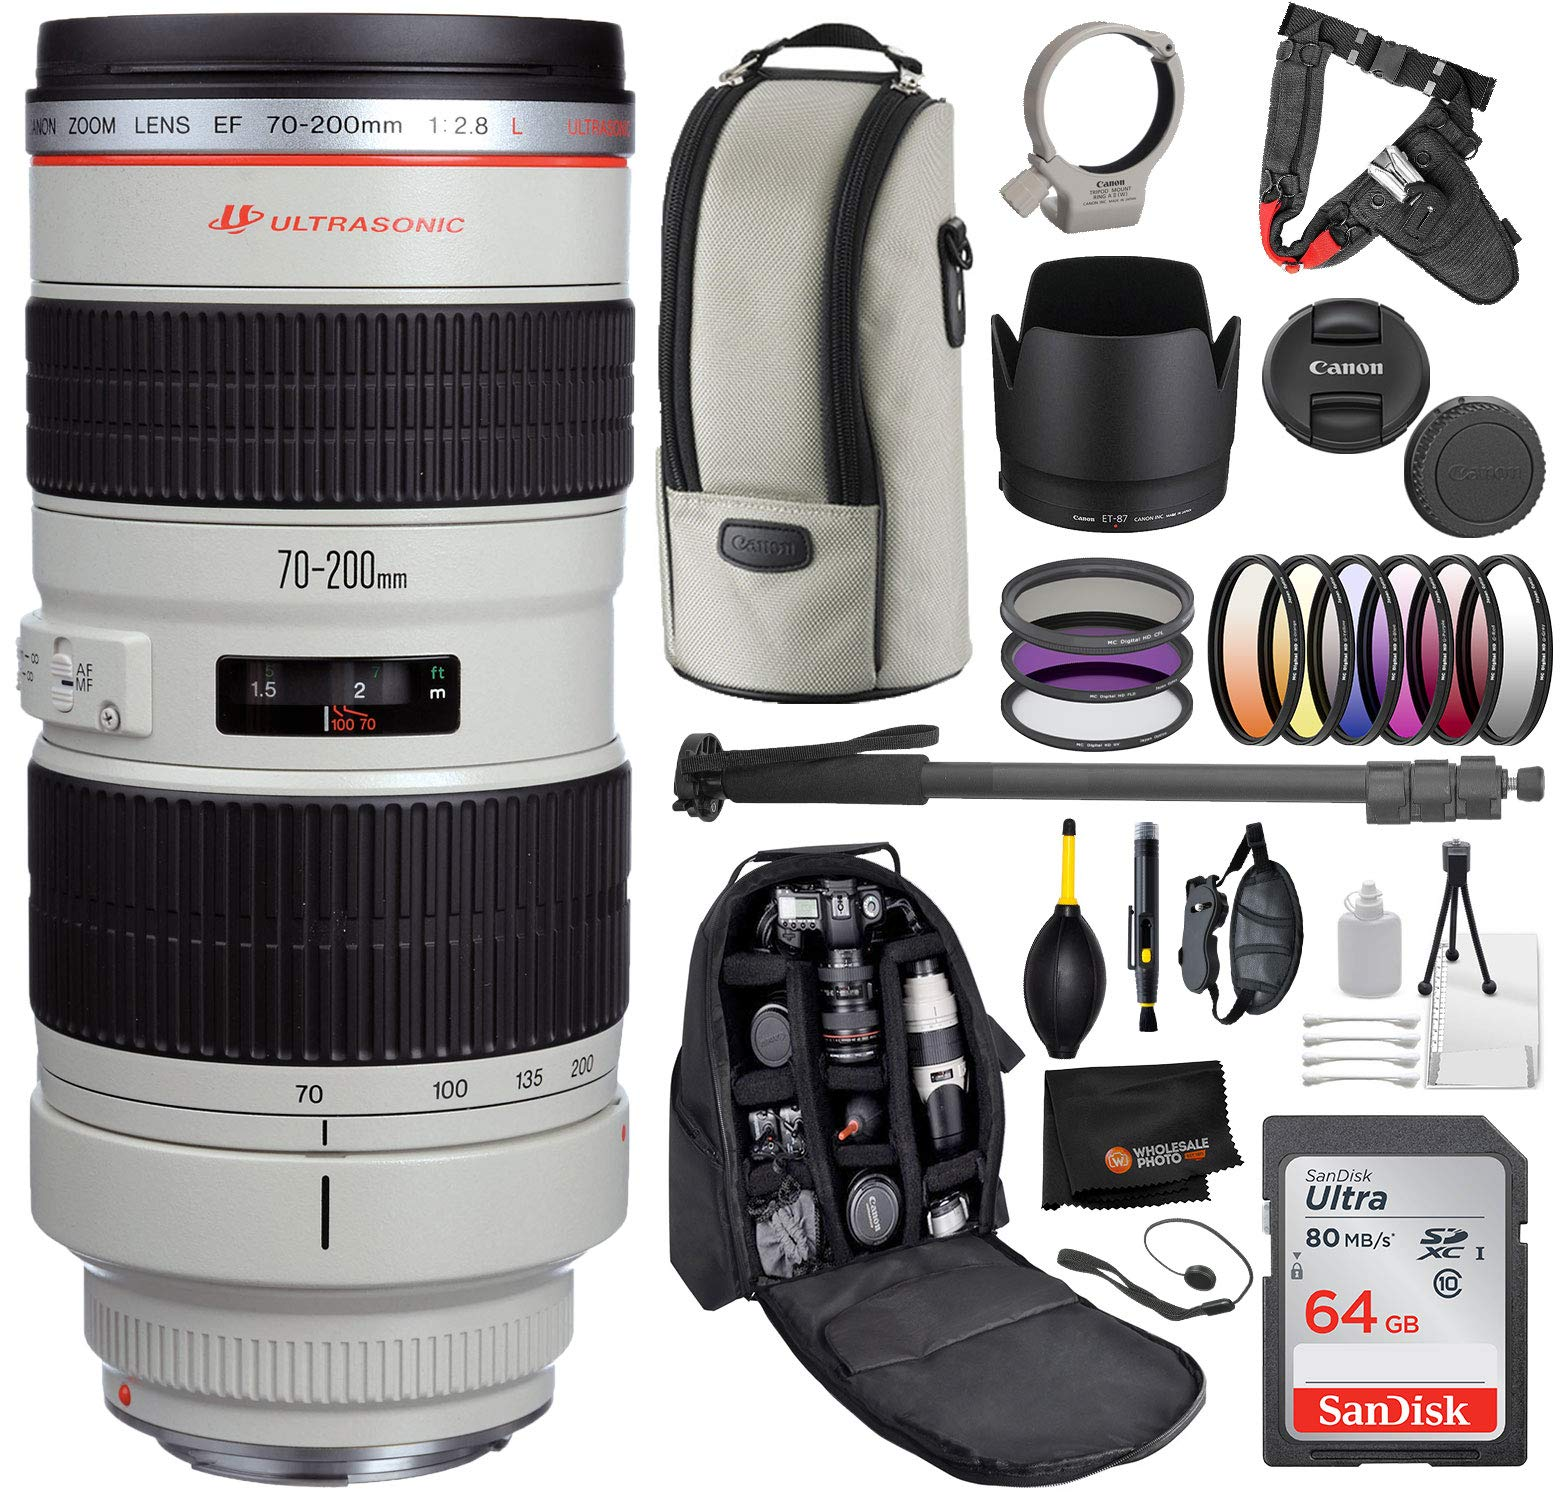 Canon EF 70-200mm f/2.8L USM Lens with Professional Bundle Package Deal Kit for EOS 7D Mark II, 6D Mark II, 5D Mark IV, 5D S R, 5D S, 5D Mark III, 80D, 70D, 77D, T5, T6, T6s, T7i, SL2